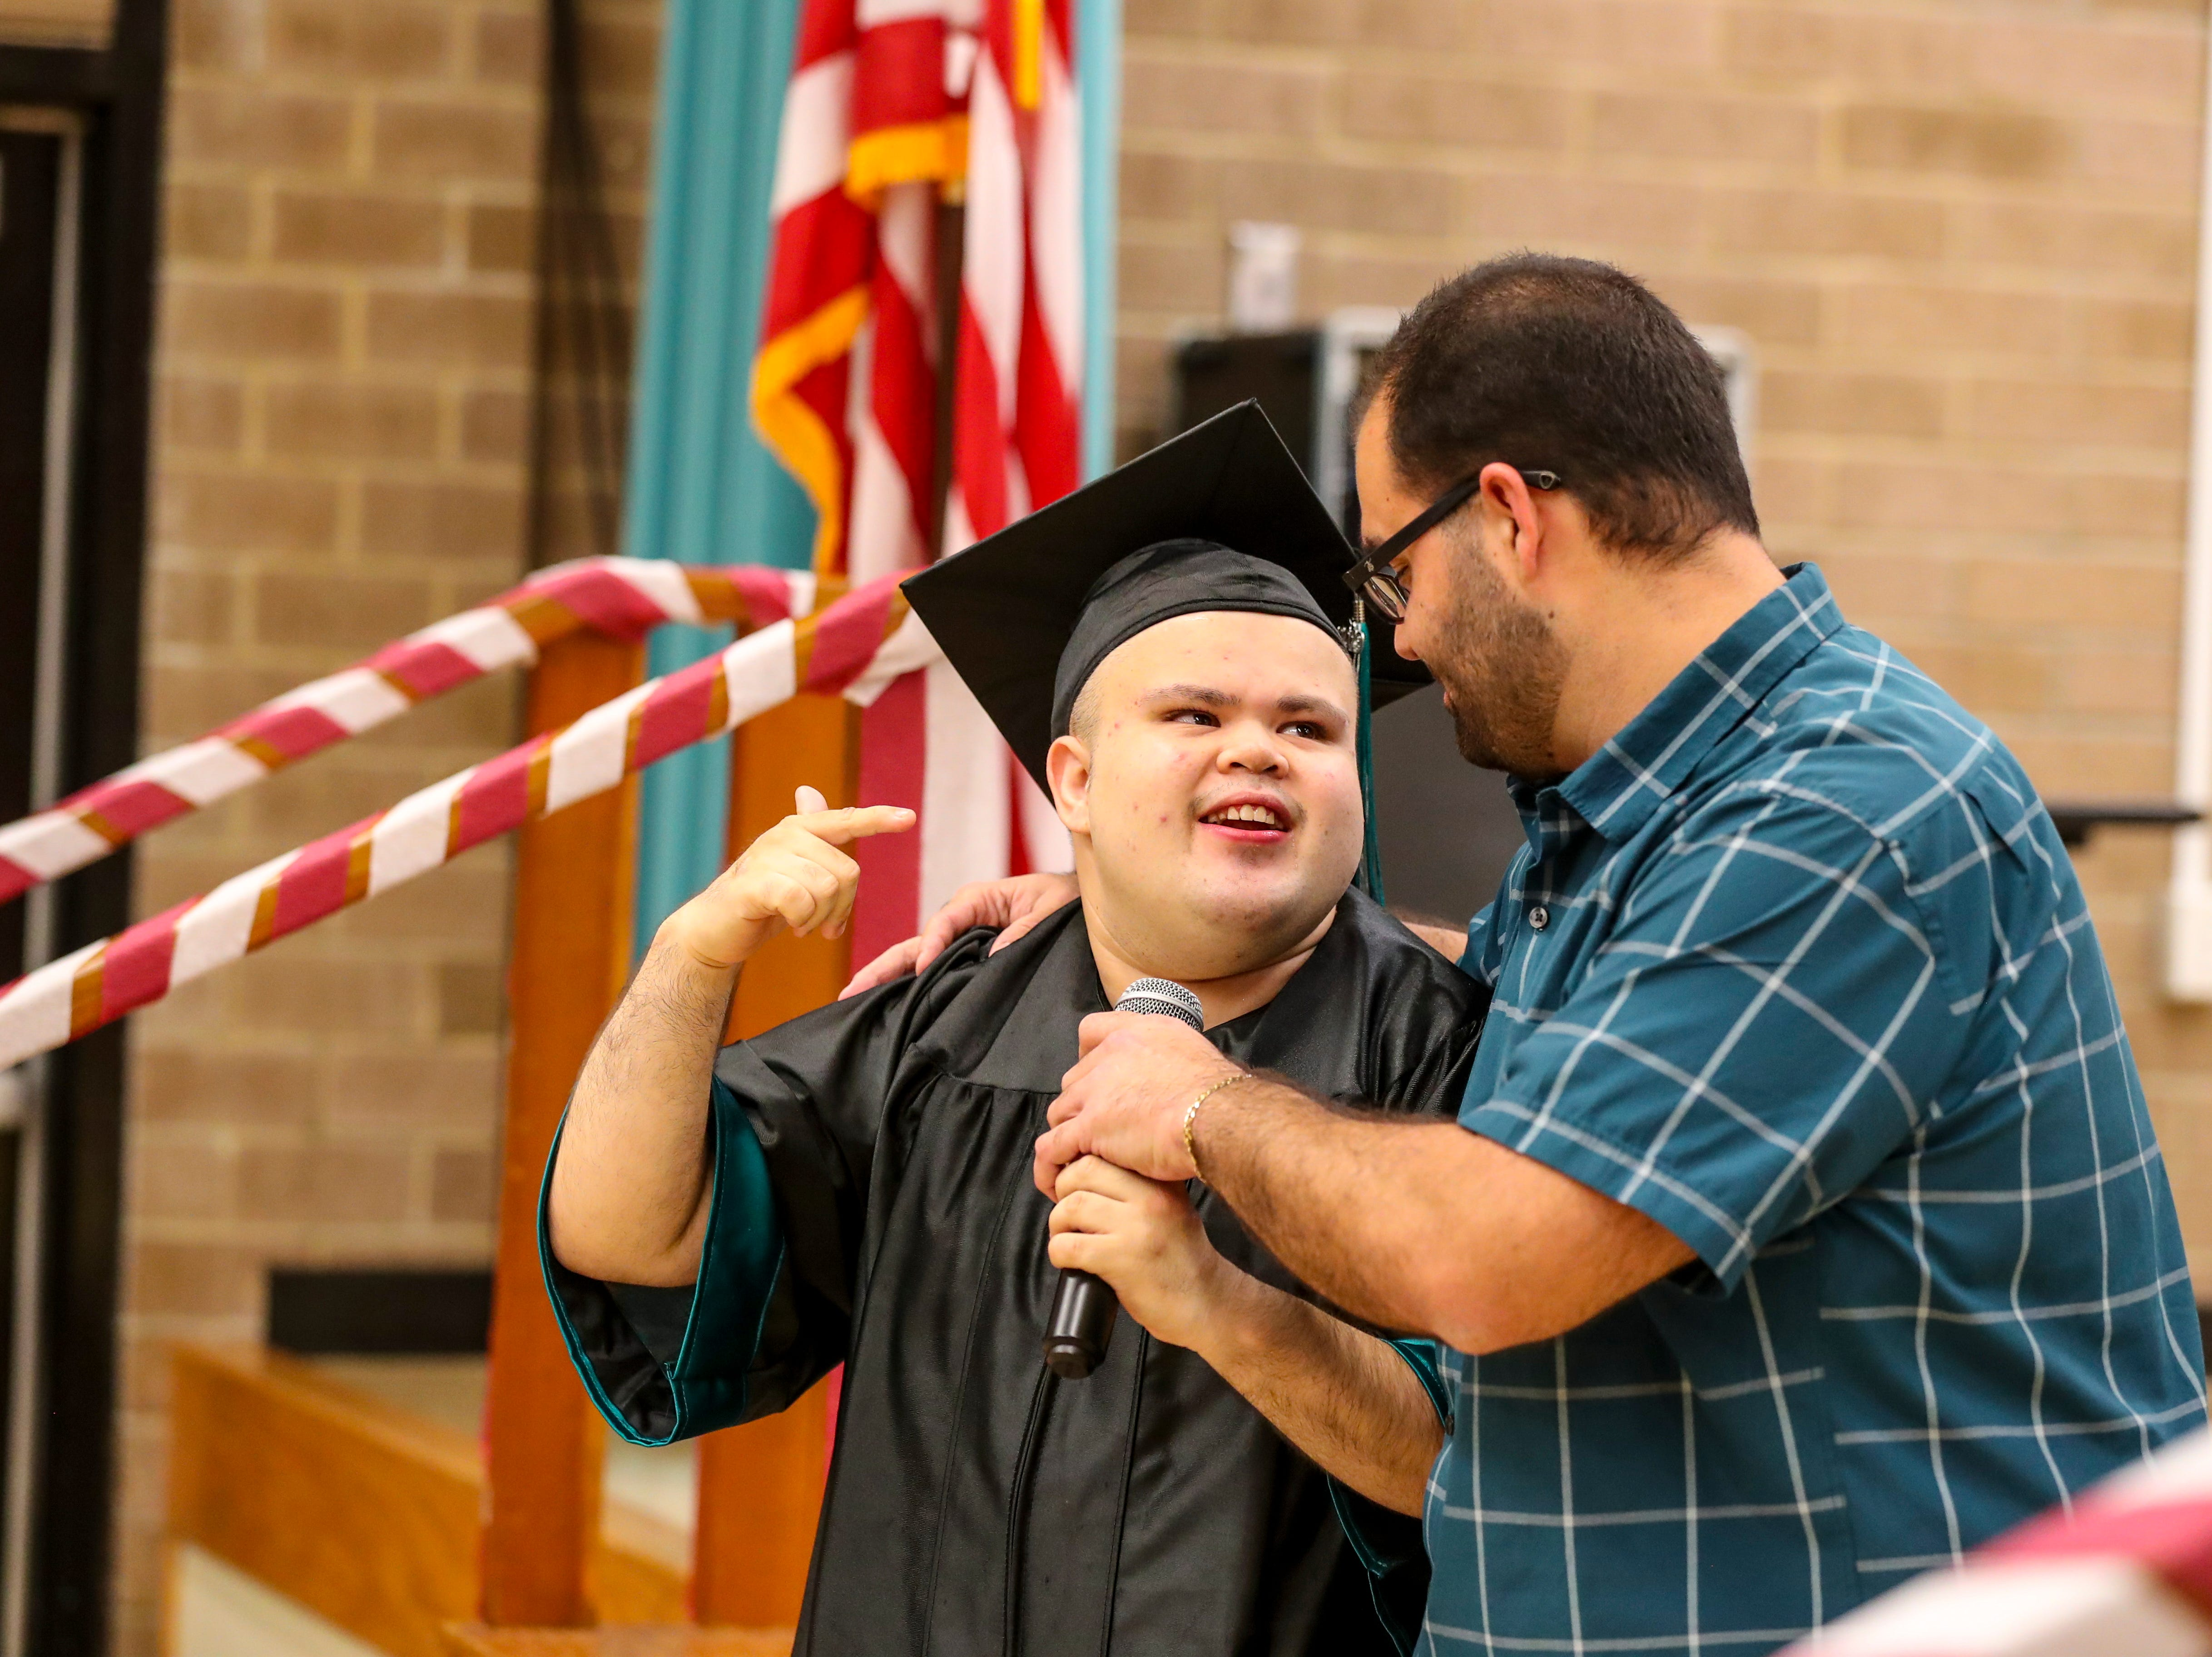 Daviel Deras looks to Paraprofessional, Nick Brisebois, for help saying the Pledge of Allegiance to start the ceremony.  13 students at Buckingham Exceptional Student Center graduated during a ceremony in their honor. Family, friends, and staff were there to honor the graduates.